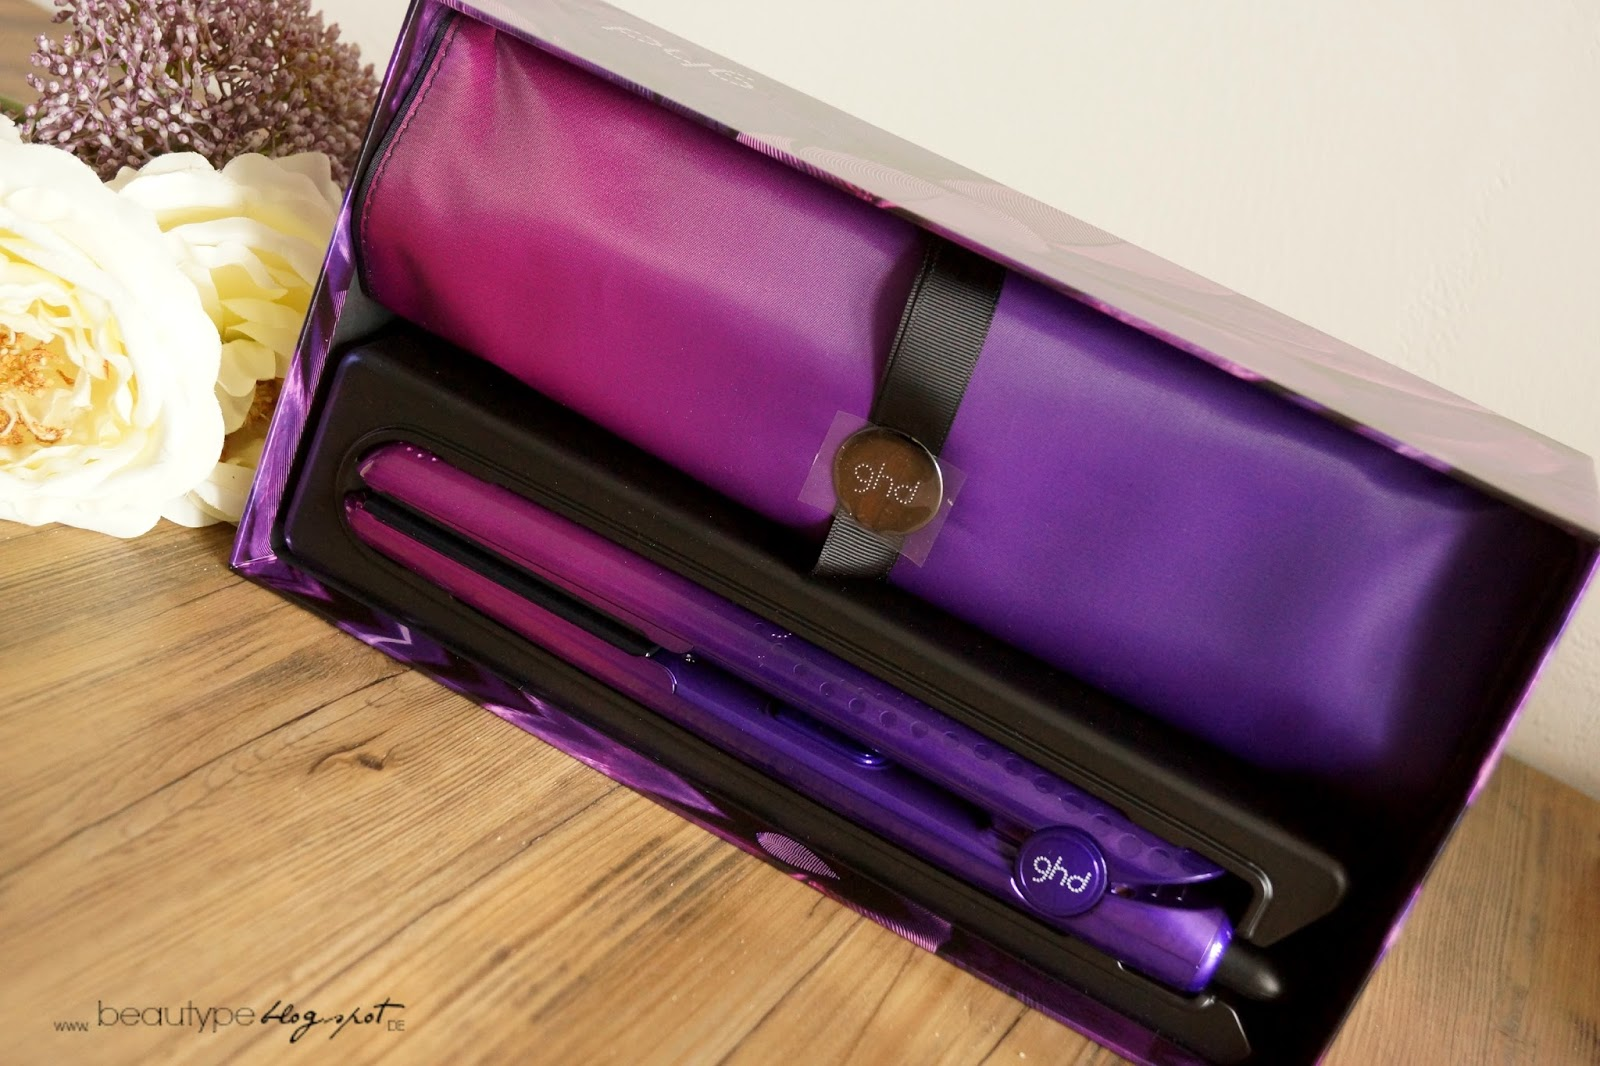 beau ty pe review ghd v sunset professional styler bird of paradies collection. Black Bedroom Furniture Sets. Home Design Ideas